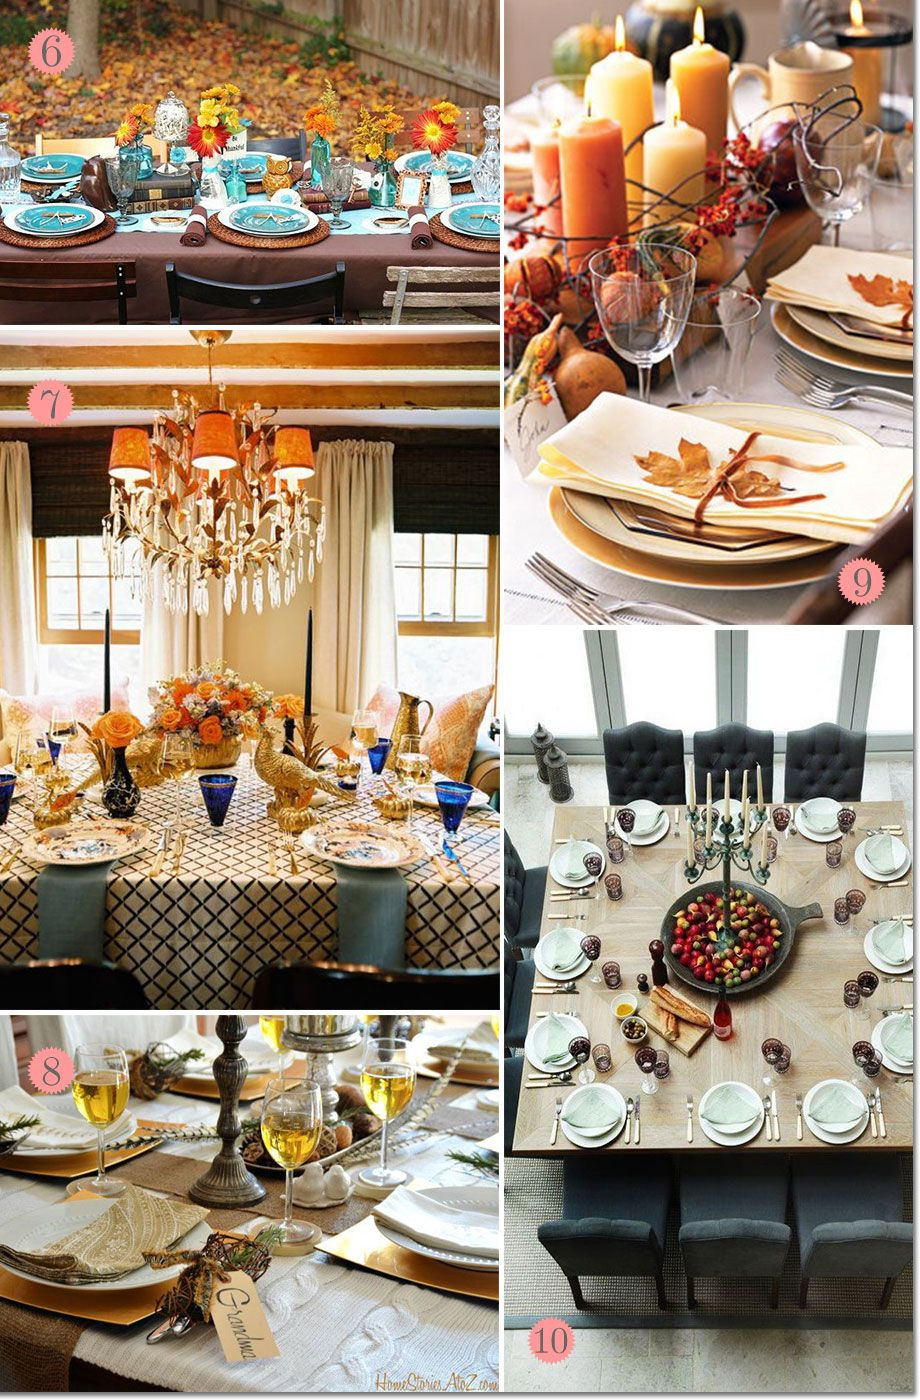 Thanksgiving Table Setting Ideas Modern Rustic Thanksgiving Table Settings 10 Great Ideas